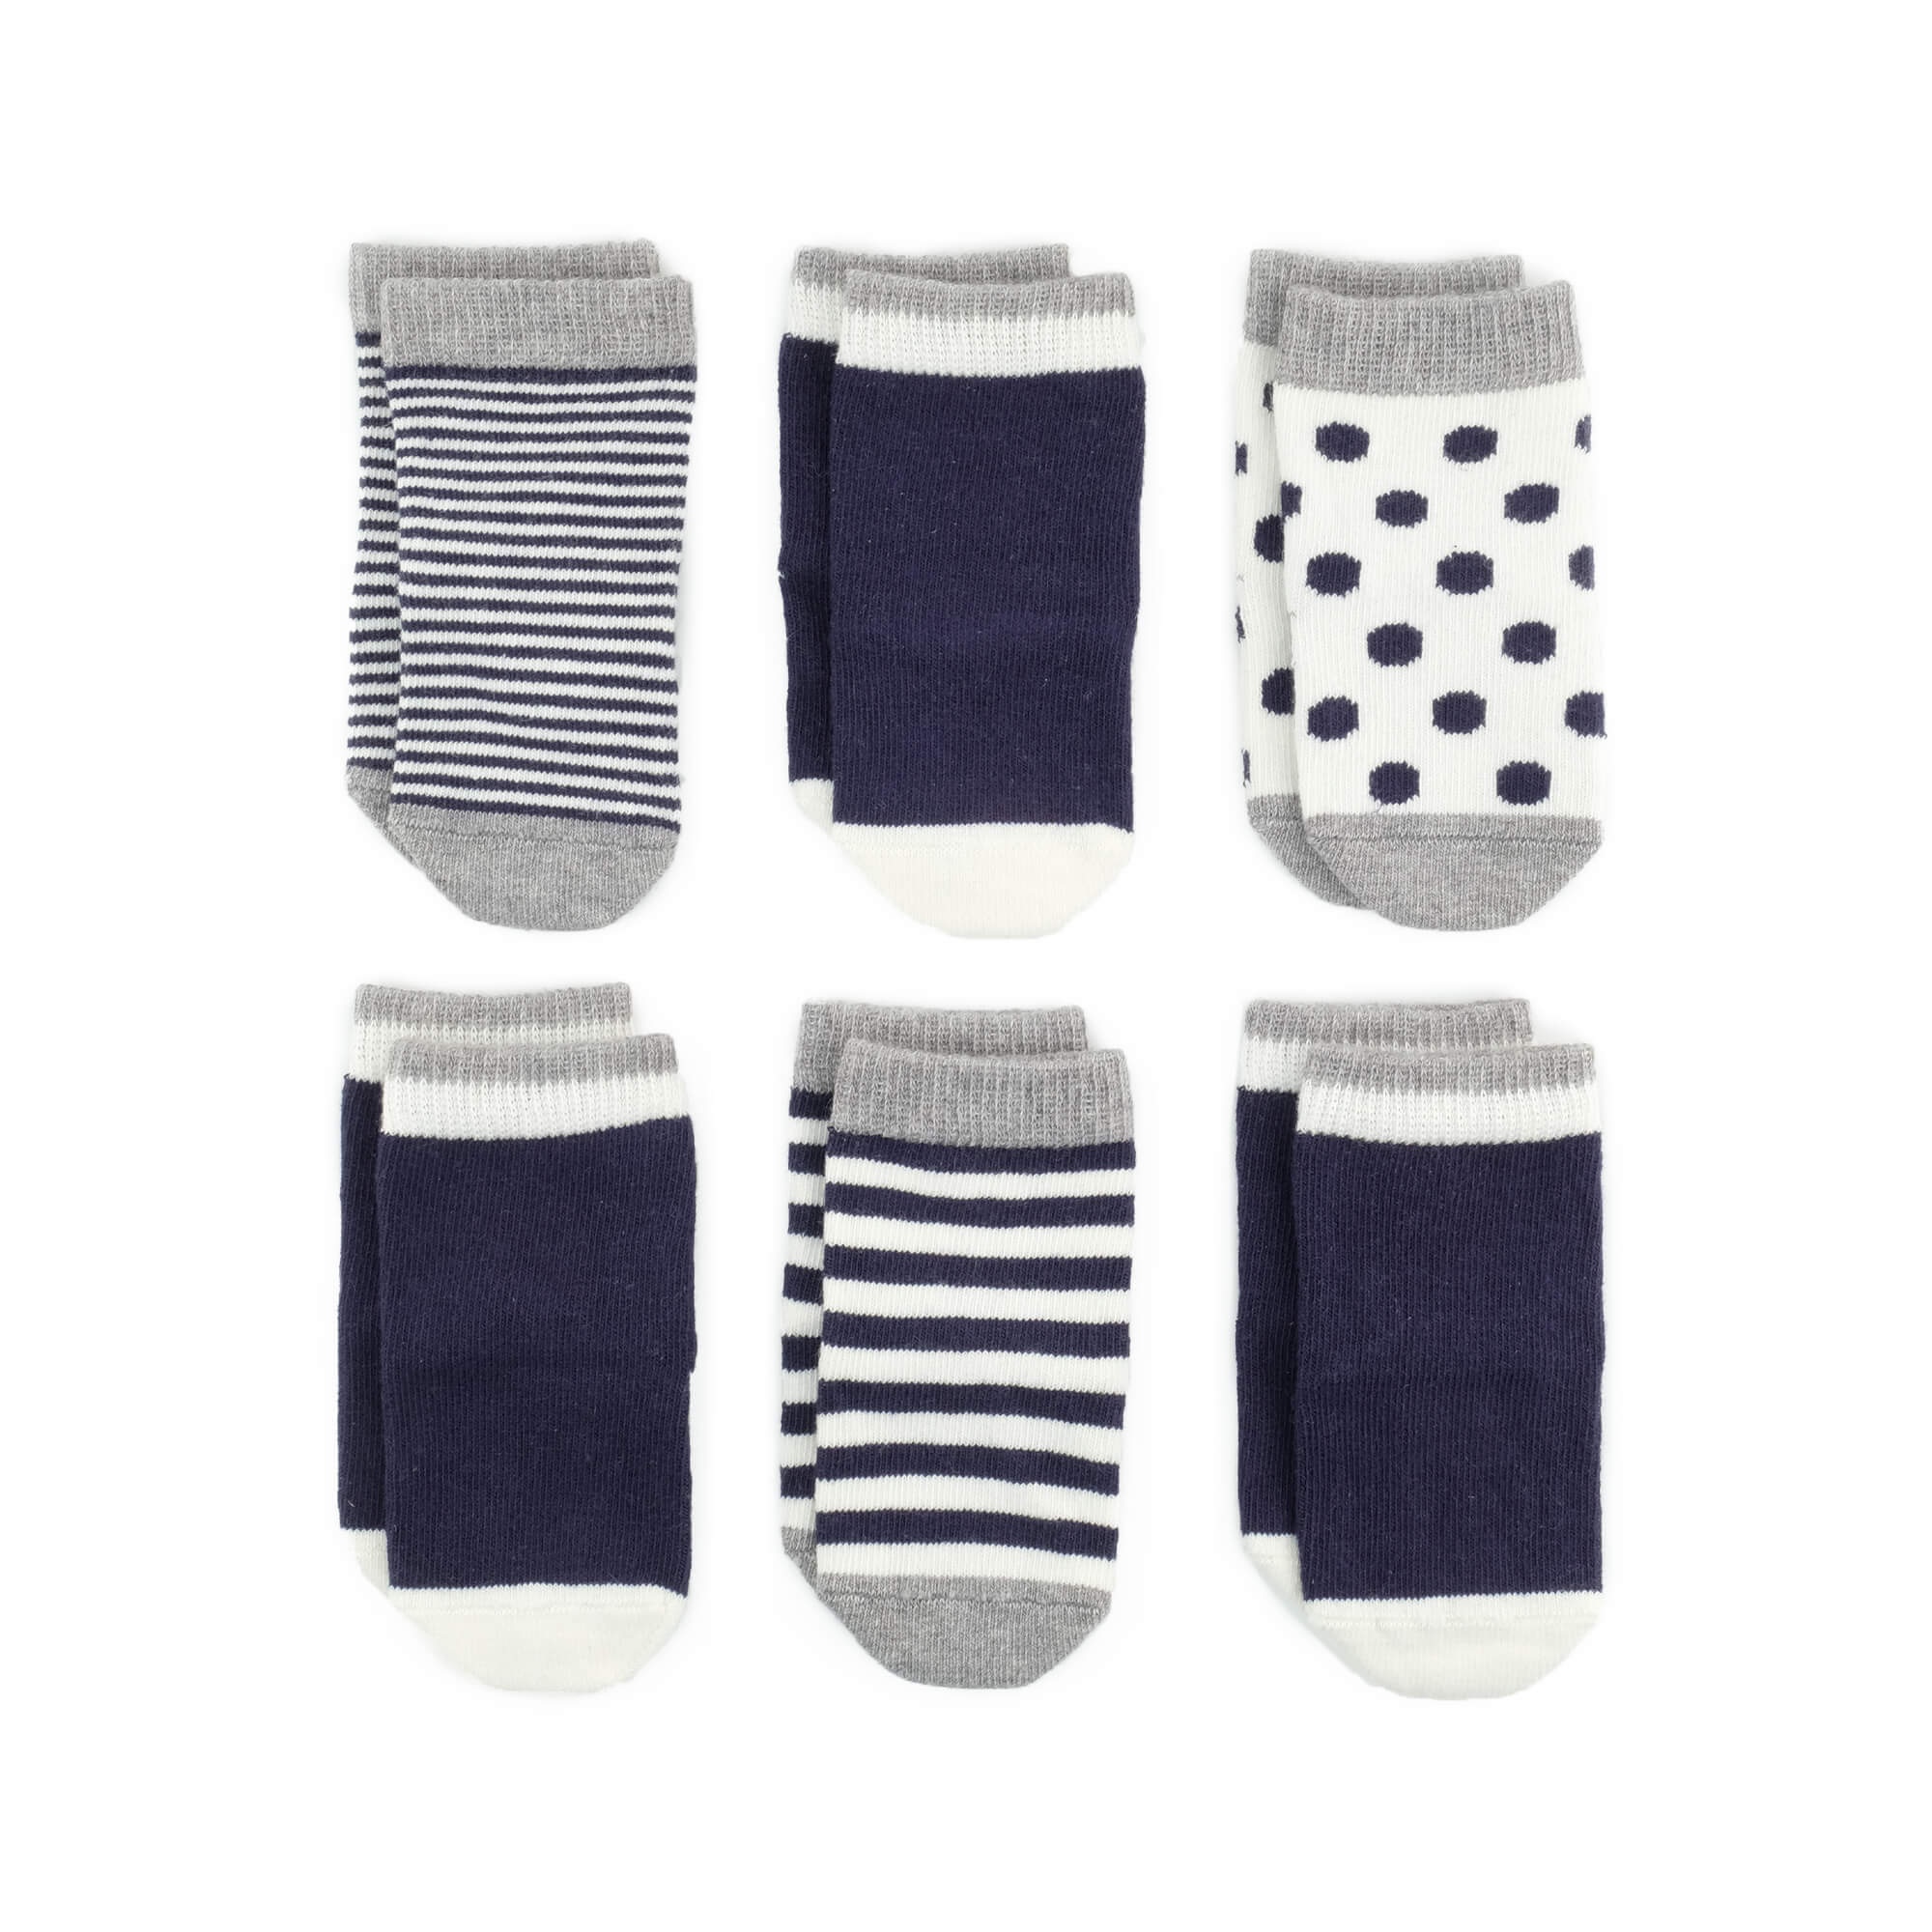 Baby Socks - Classic Sky Baby Socks Gift Set - Blue⎪Etiquette Clothiers